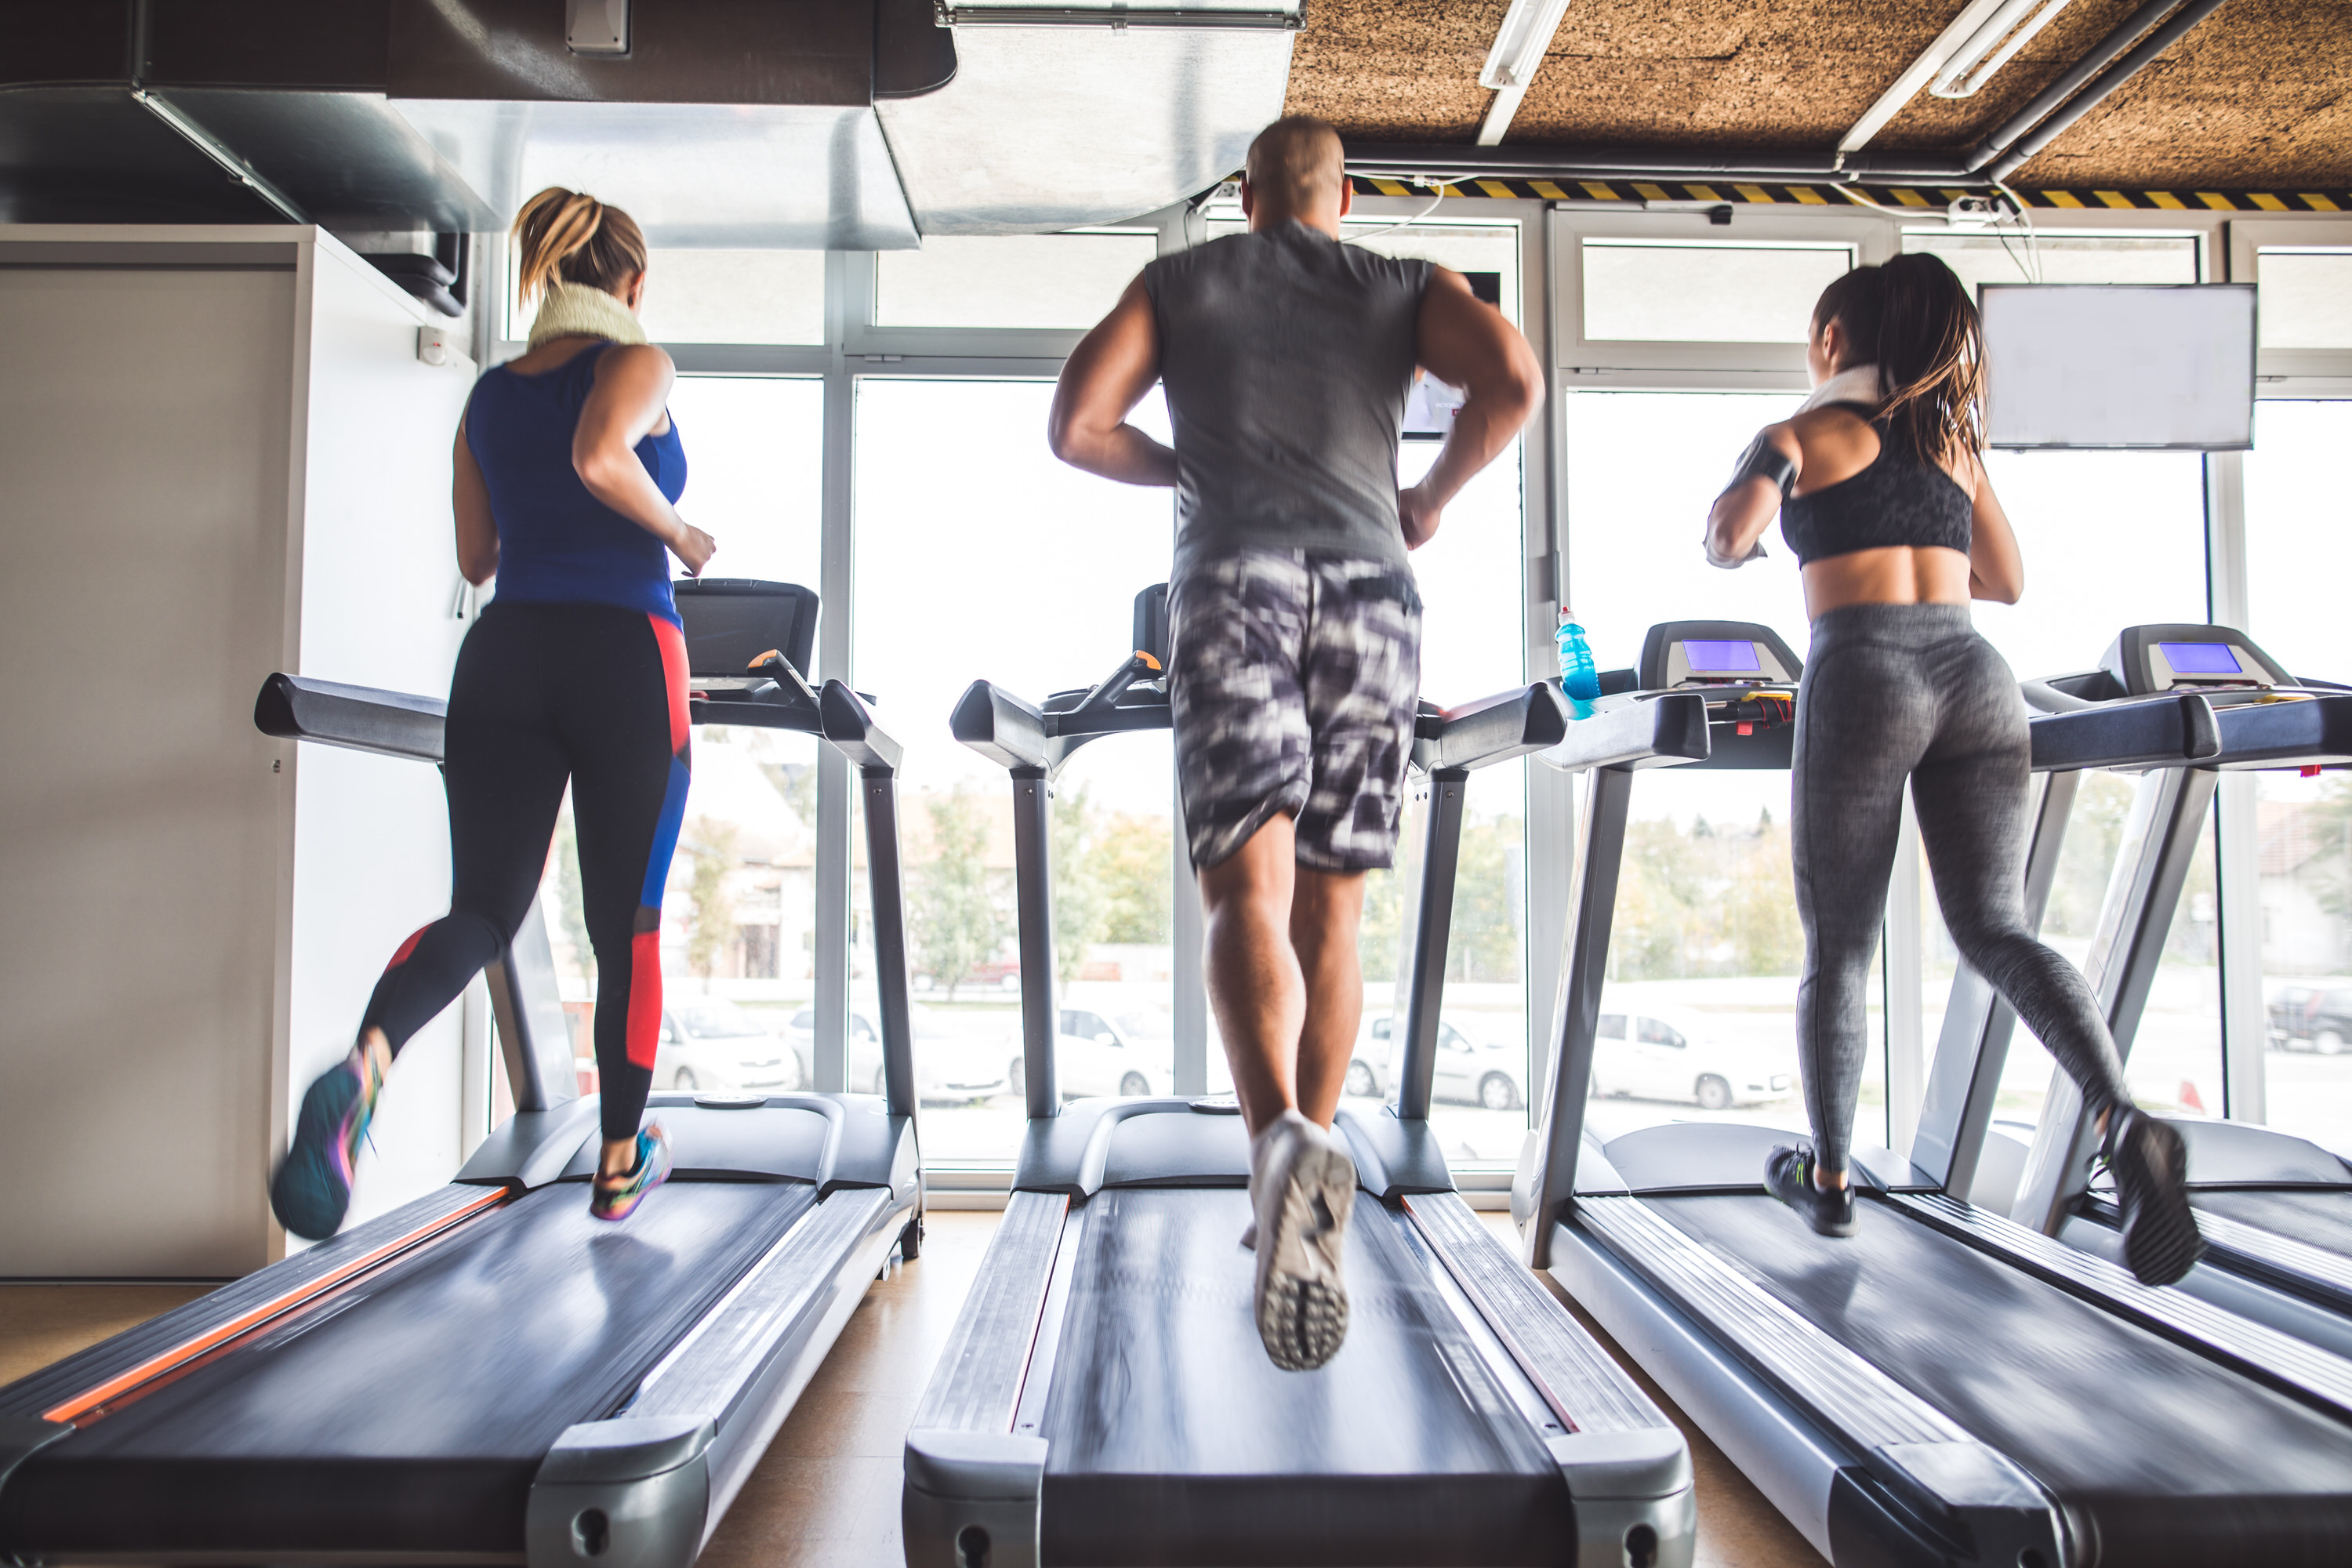 Handsome man and two young beautiful women doing cardio on a treadmill in a gym. Rear view of people working out.